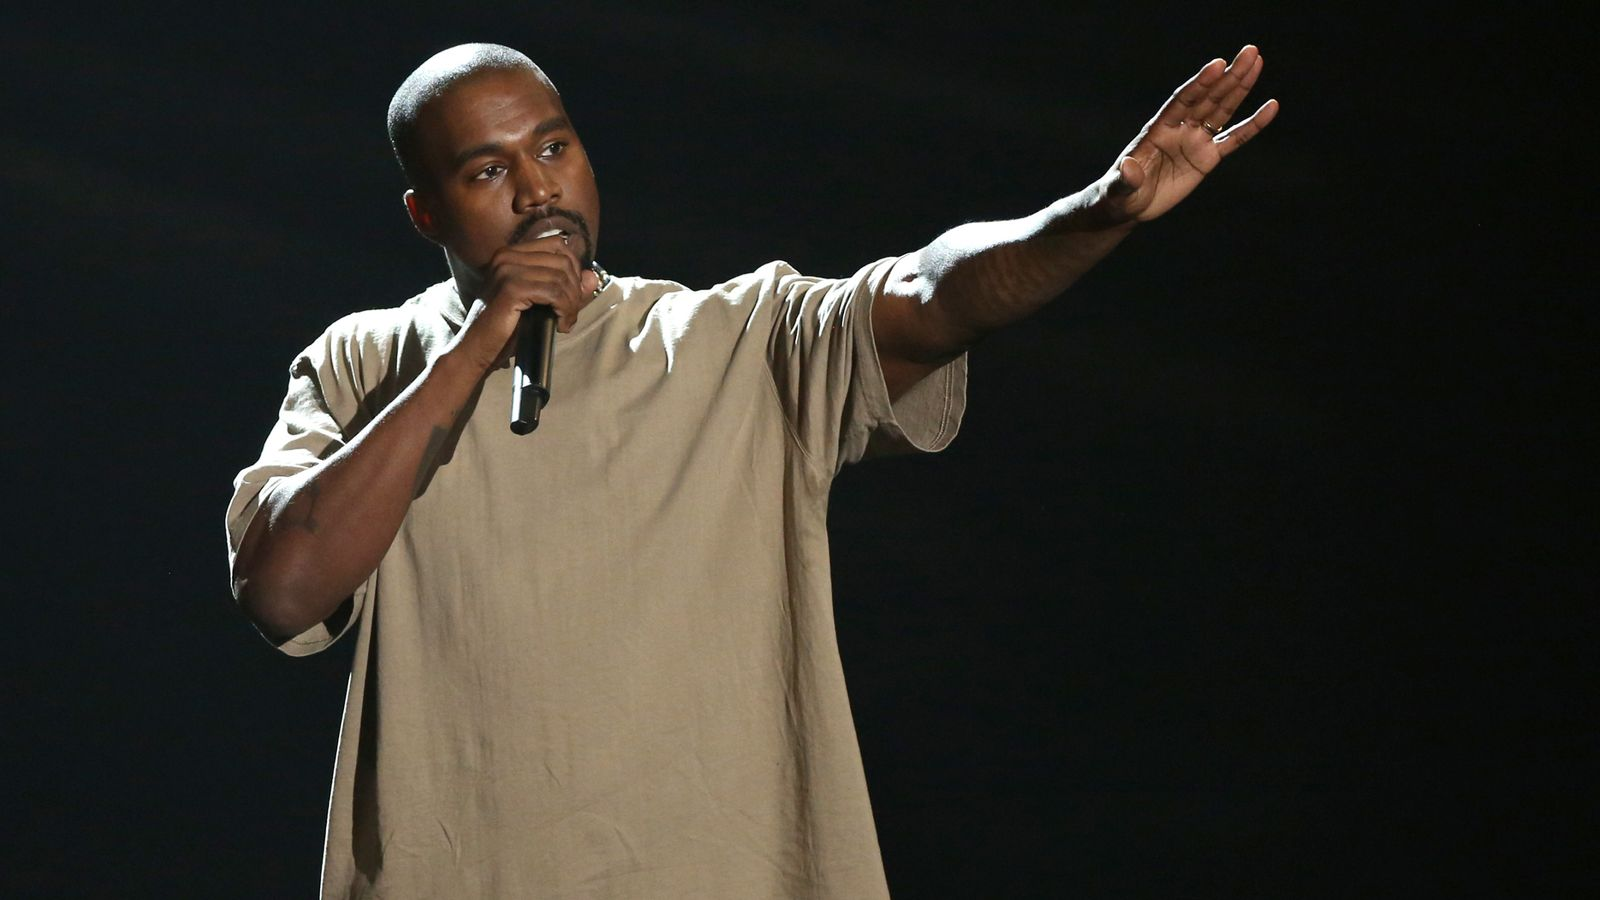 Kanye West Now The Richest Black Man In the World